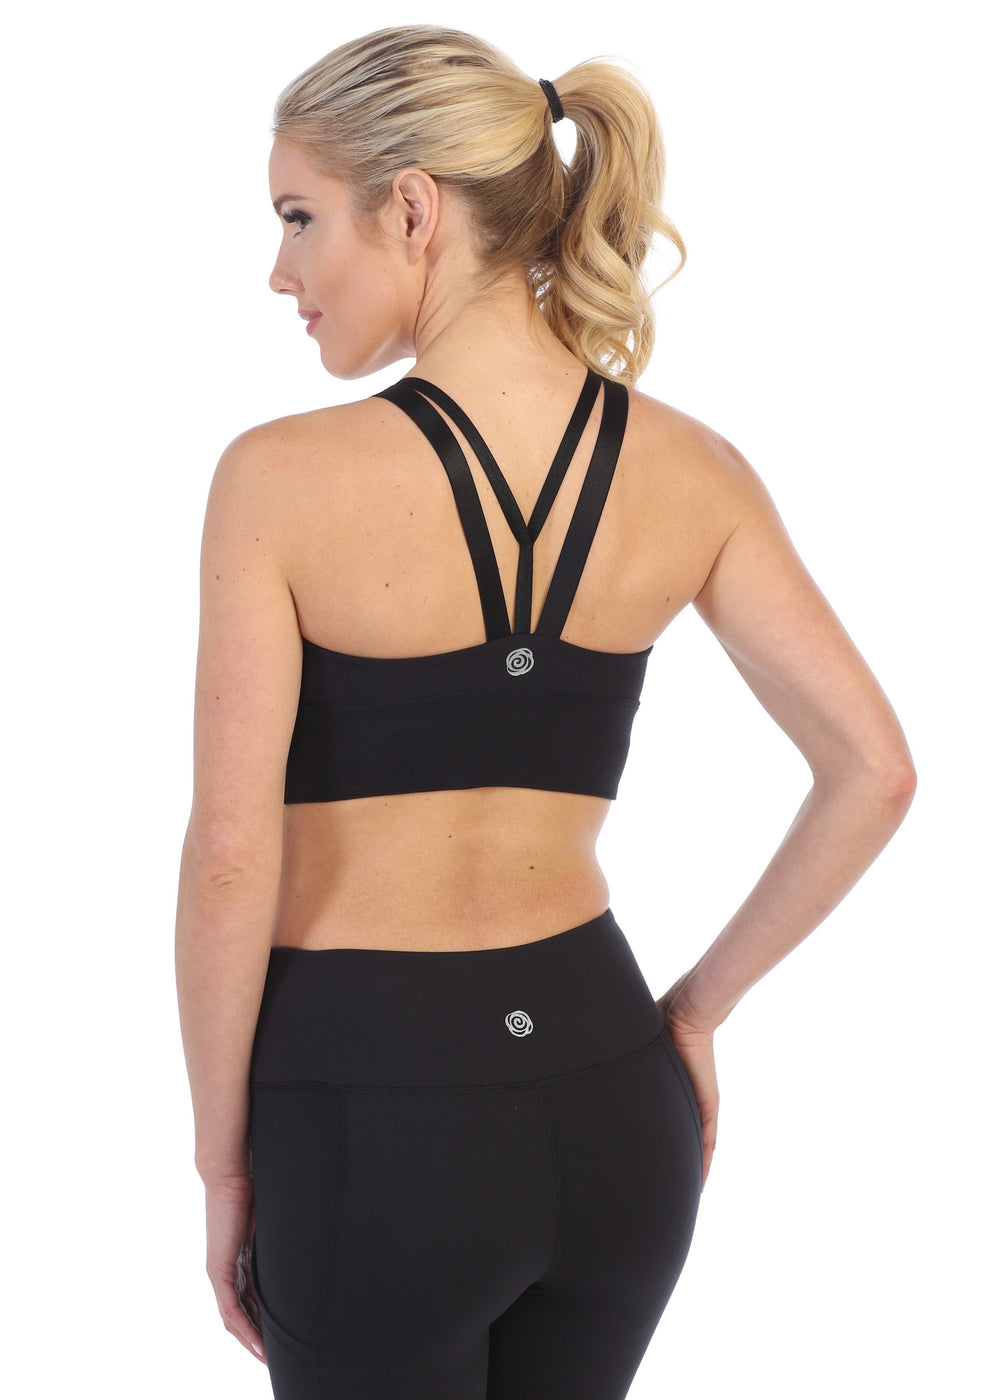 Black-Scoop Back Workout Tank Top Built In Sports Bra-back image